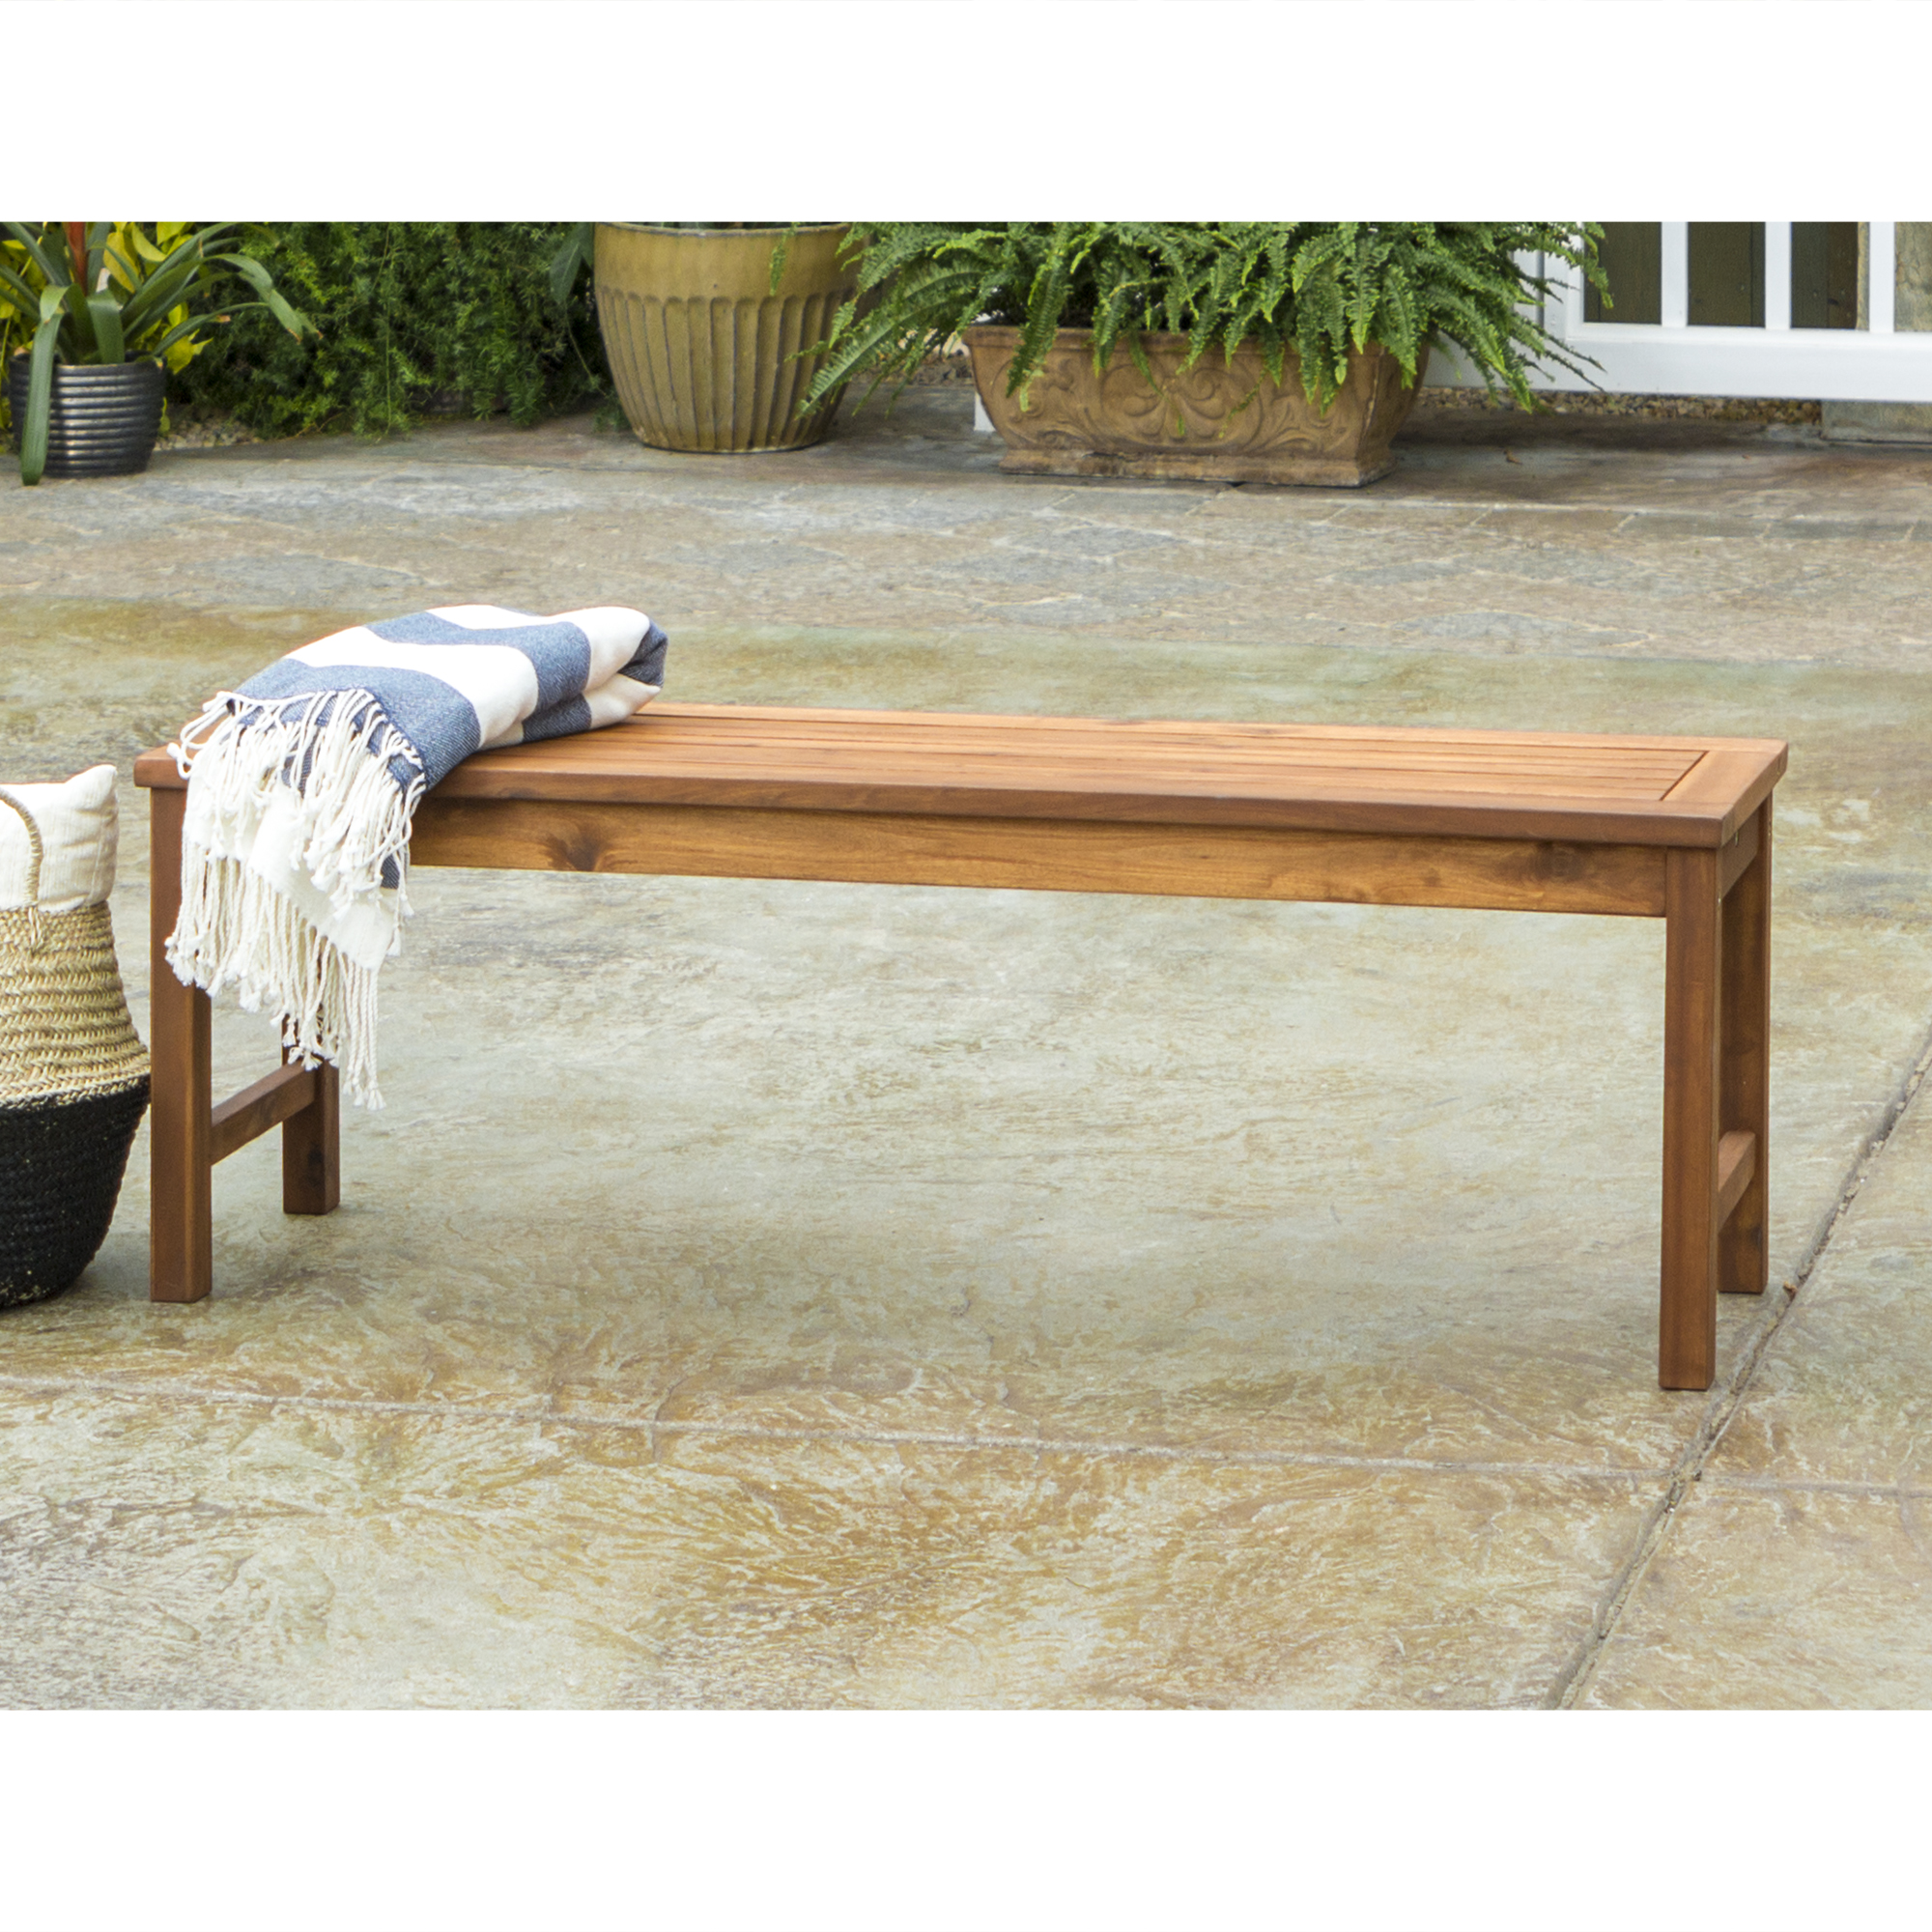 Acacia Wood Patio Bench, Brown